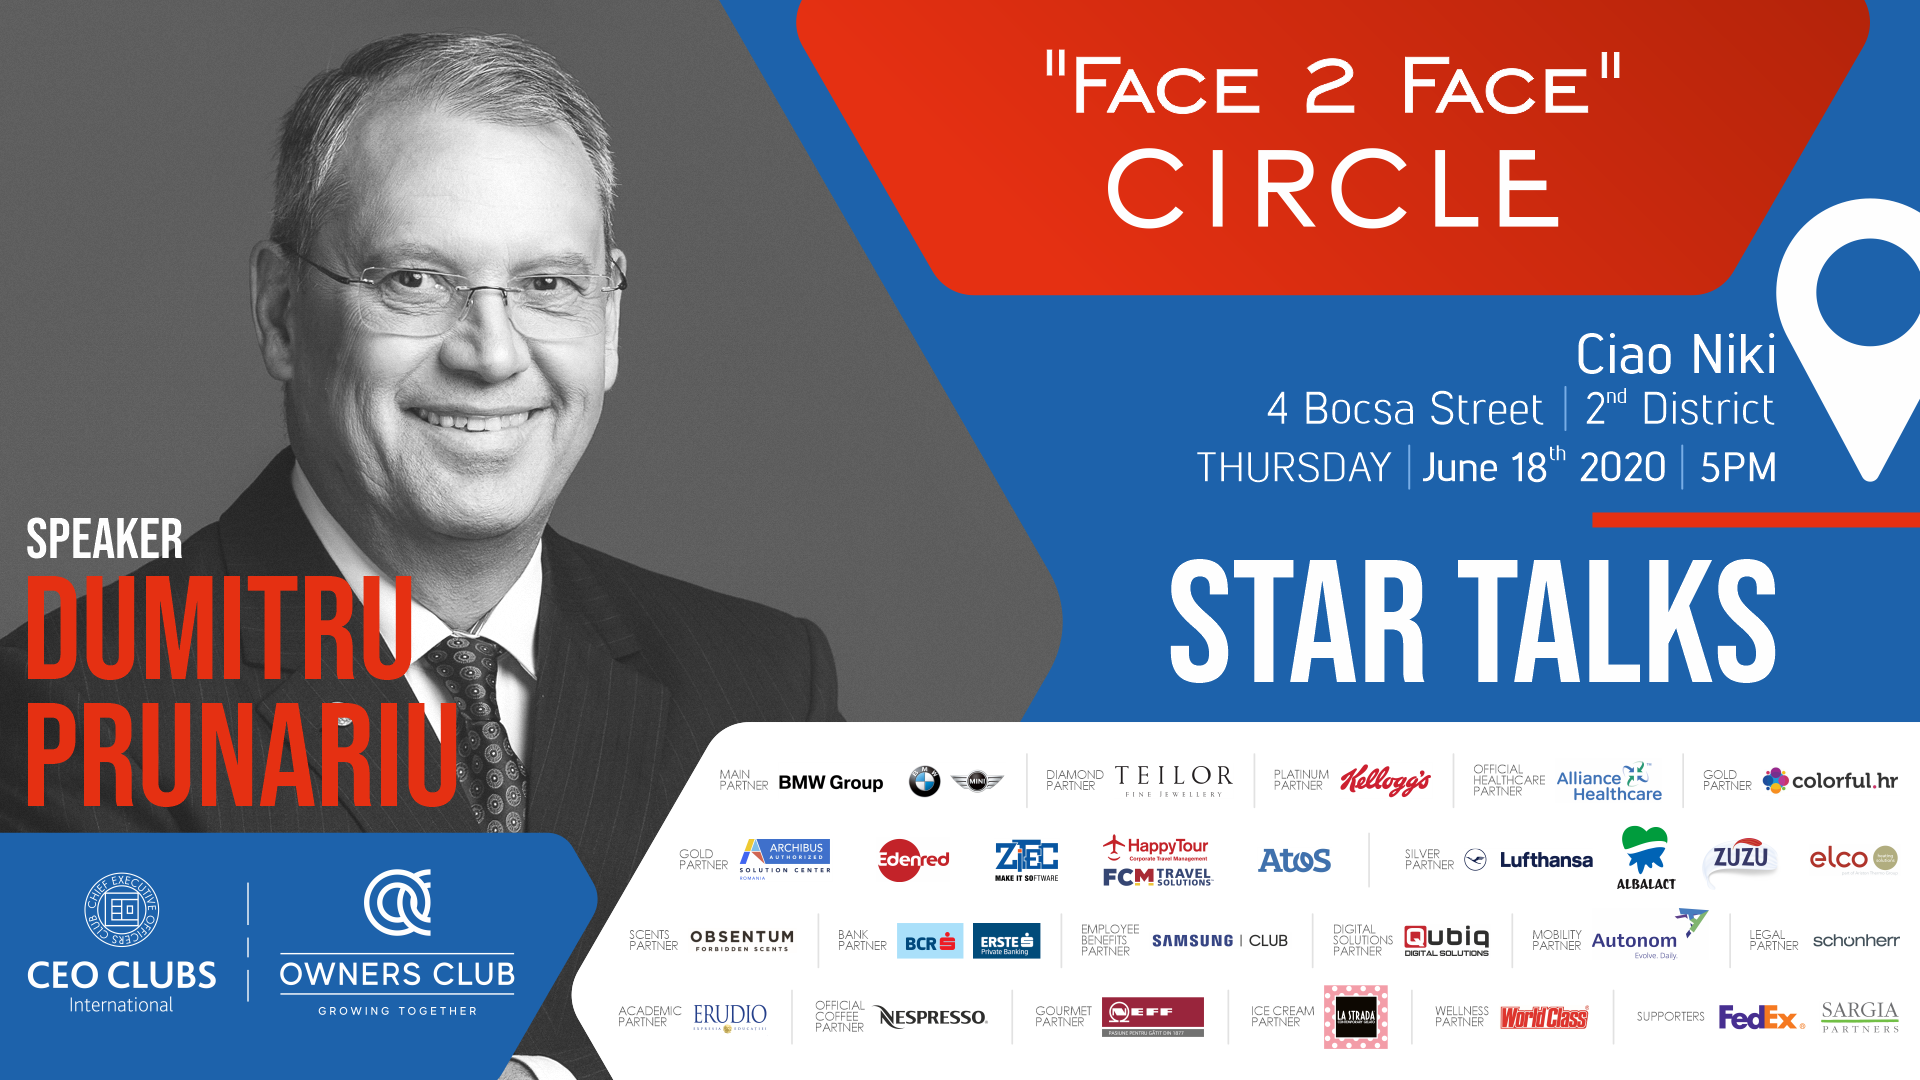 """Face 2 Face"" Circle - Star Talks (Available on live streaming as well)"